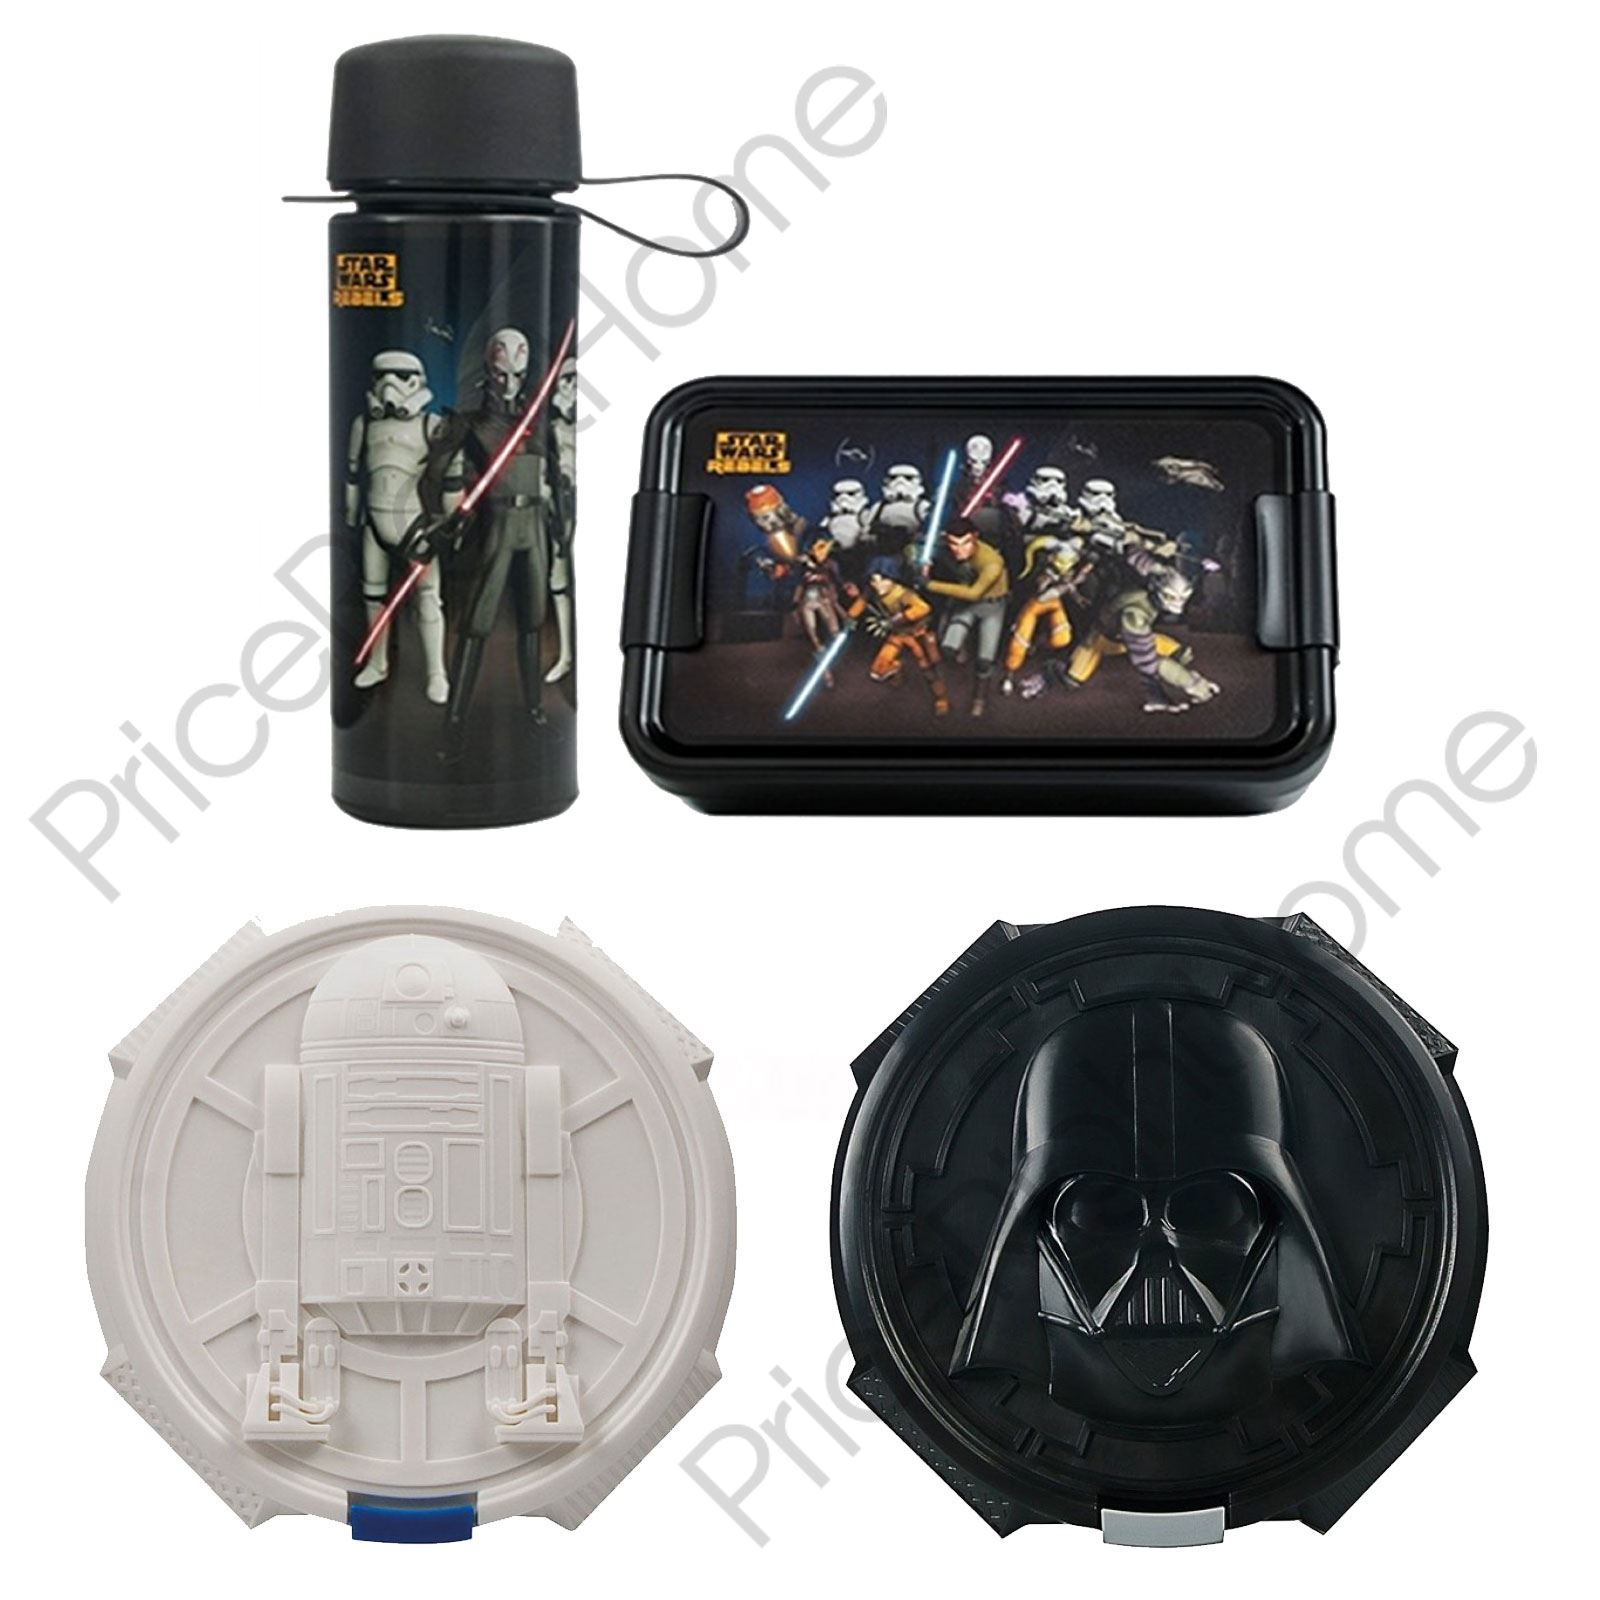 STAR WARS LUNCH BOXES CHILDRENS SCHOOL SNACKS u0026 LUNCH BOX OFFICIAL FREE P+P NEW  sc 1 st  eBay & STAR WARS LUNCH BOXES CHILDRENS SCHOOL SNACKS u0026 LUNCH BOX OFFICIAL ... Aboutintivar.Com